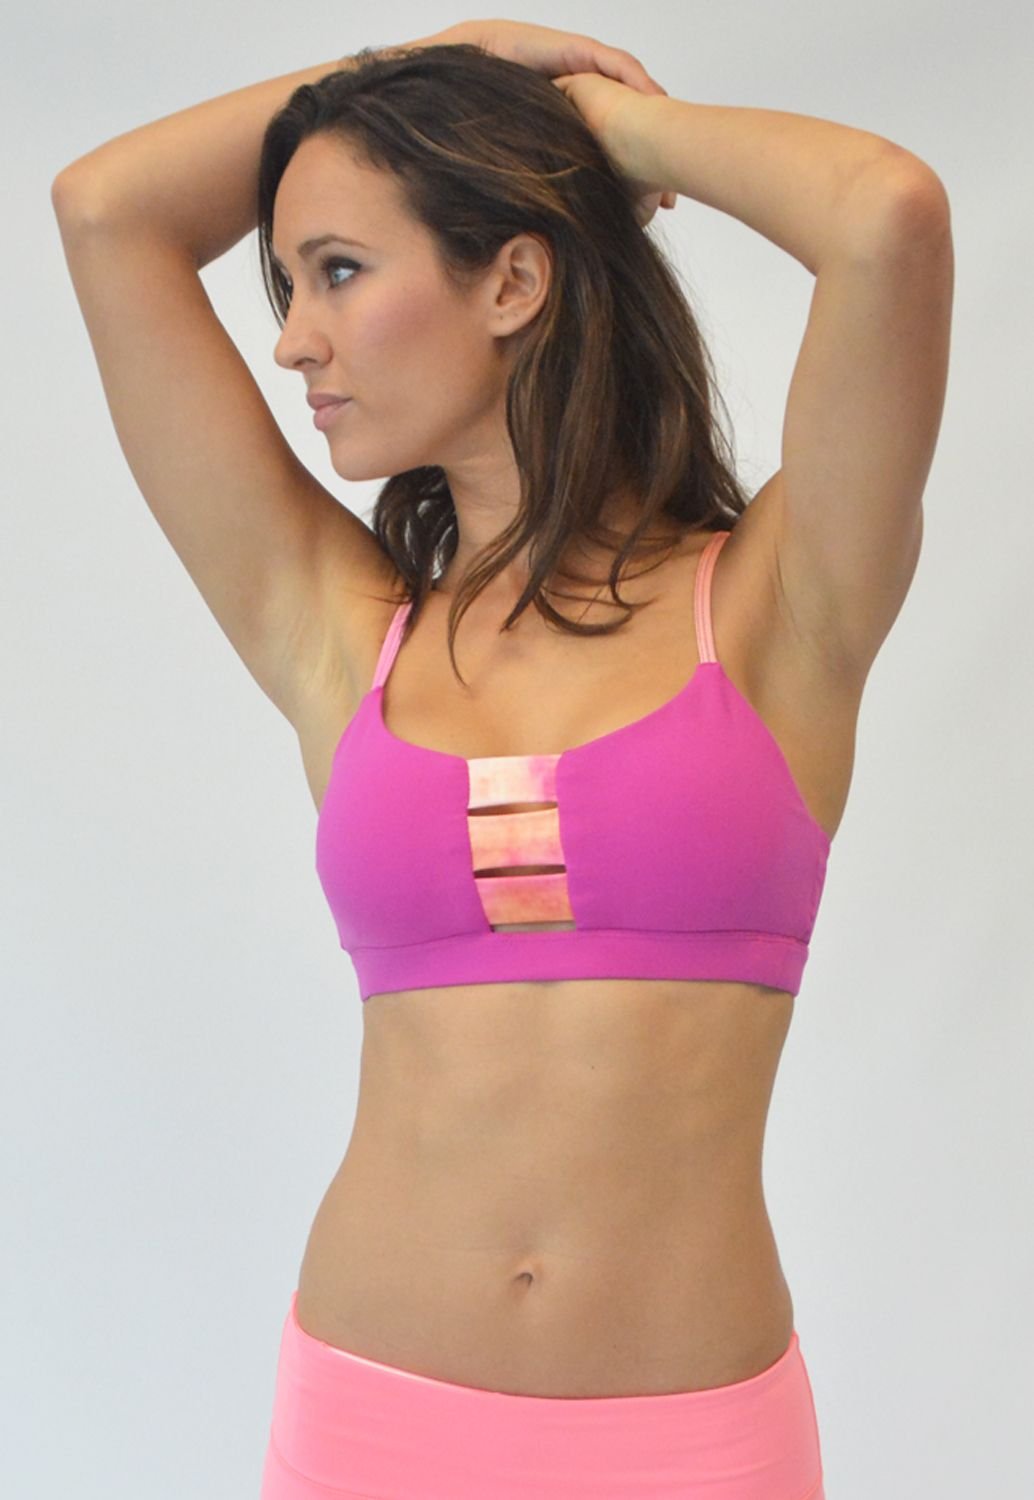 124f5a41ac Aloha - Glyder Cut out detail Sports Bra- So Cute!! - Life is too short too  wear frumpy workout apparel!! High quality Nylon Spandex fabric